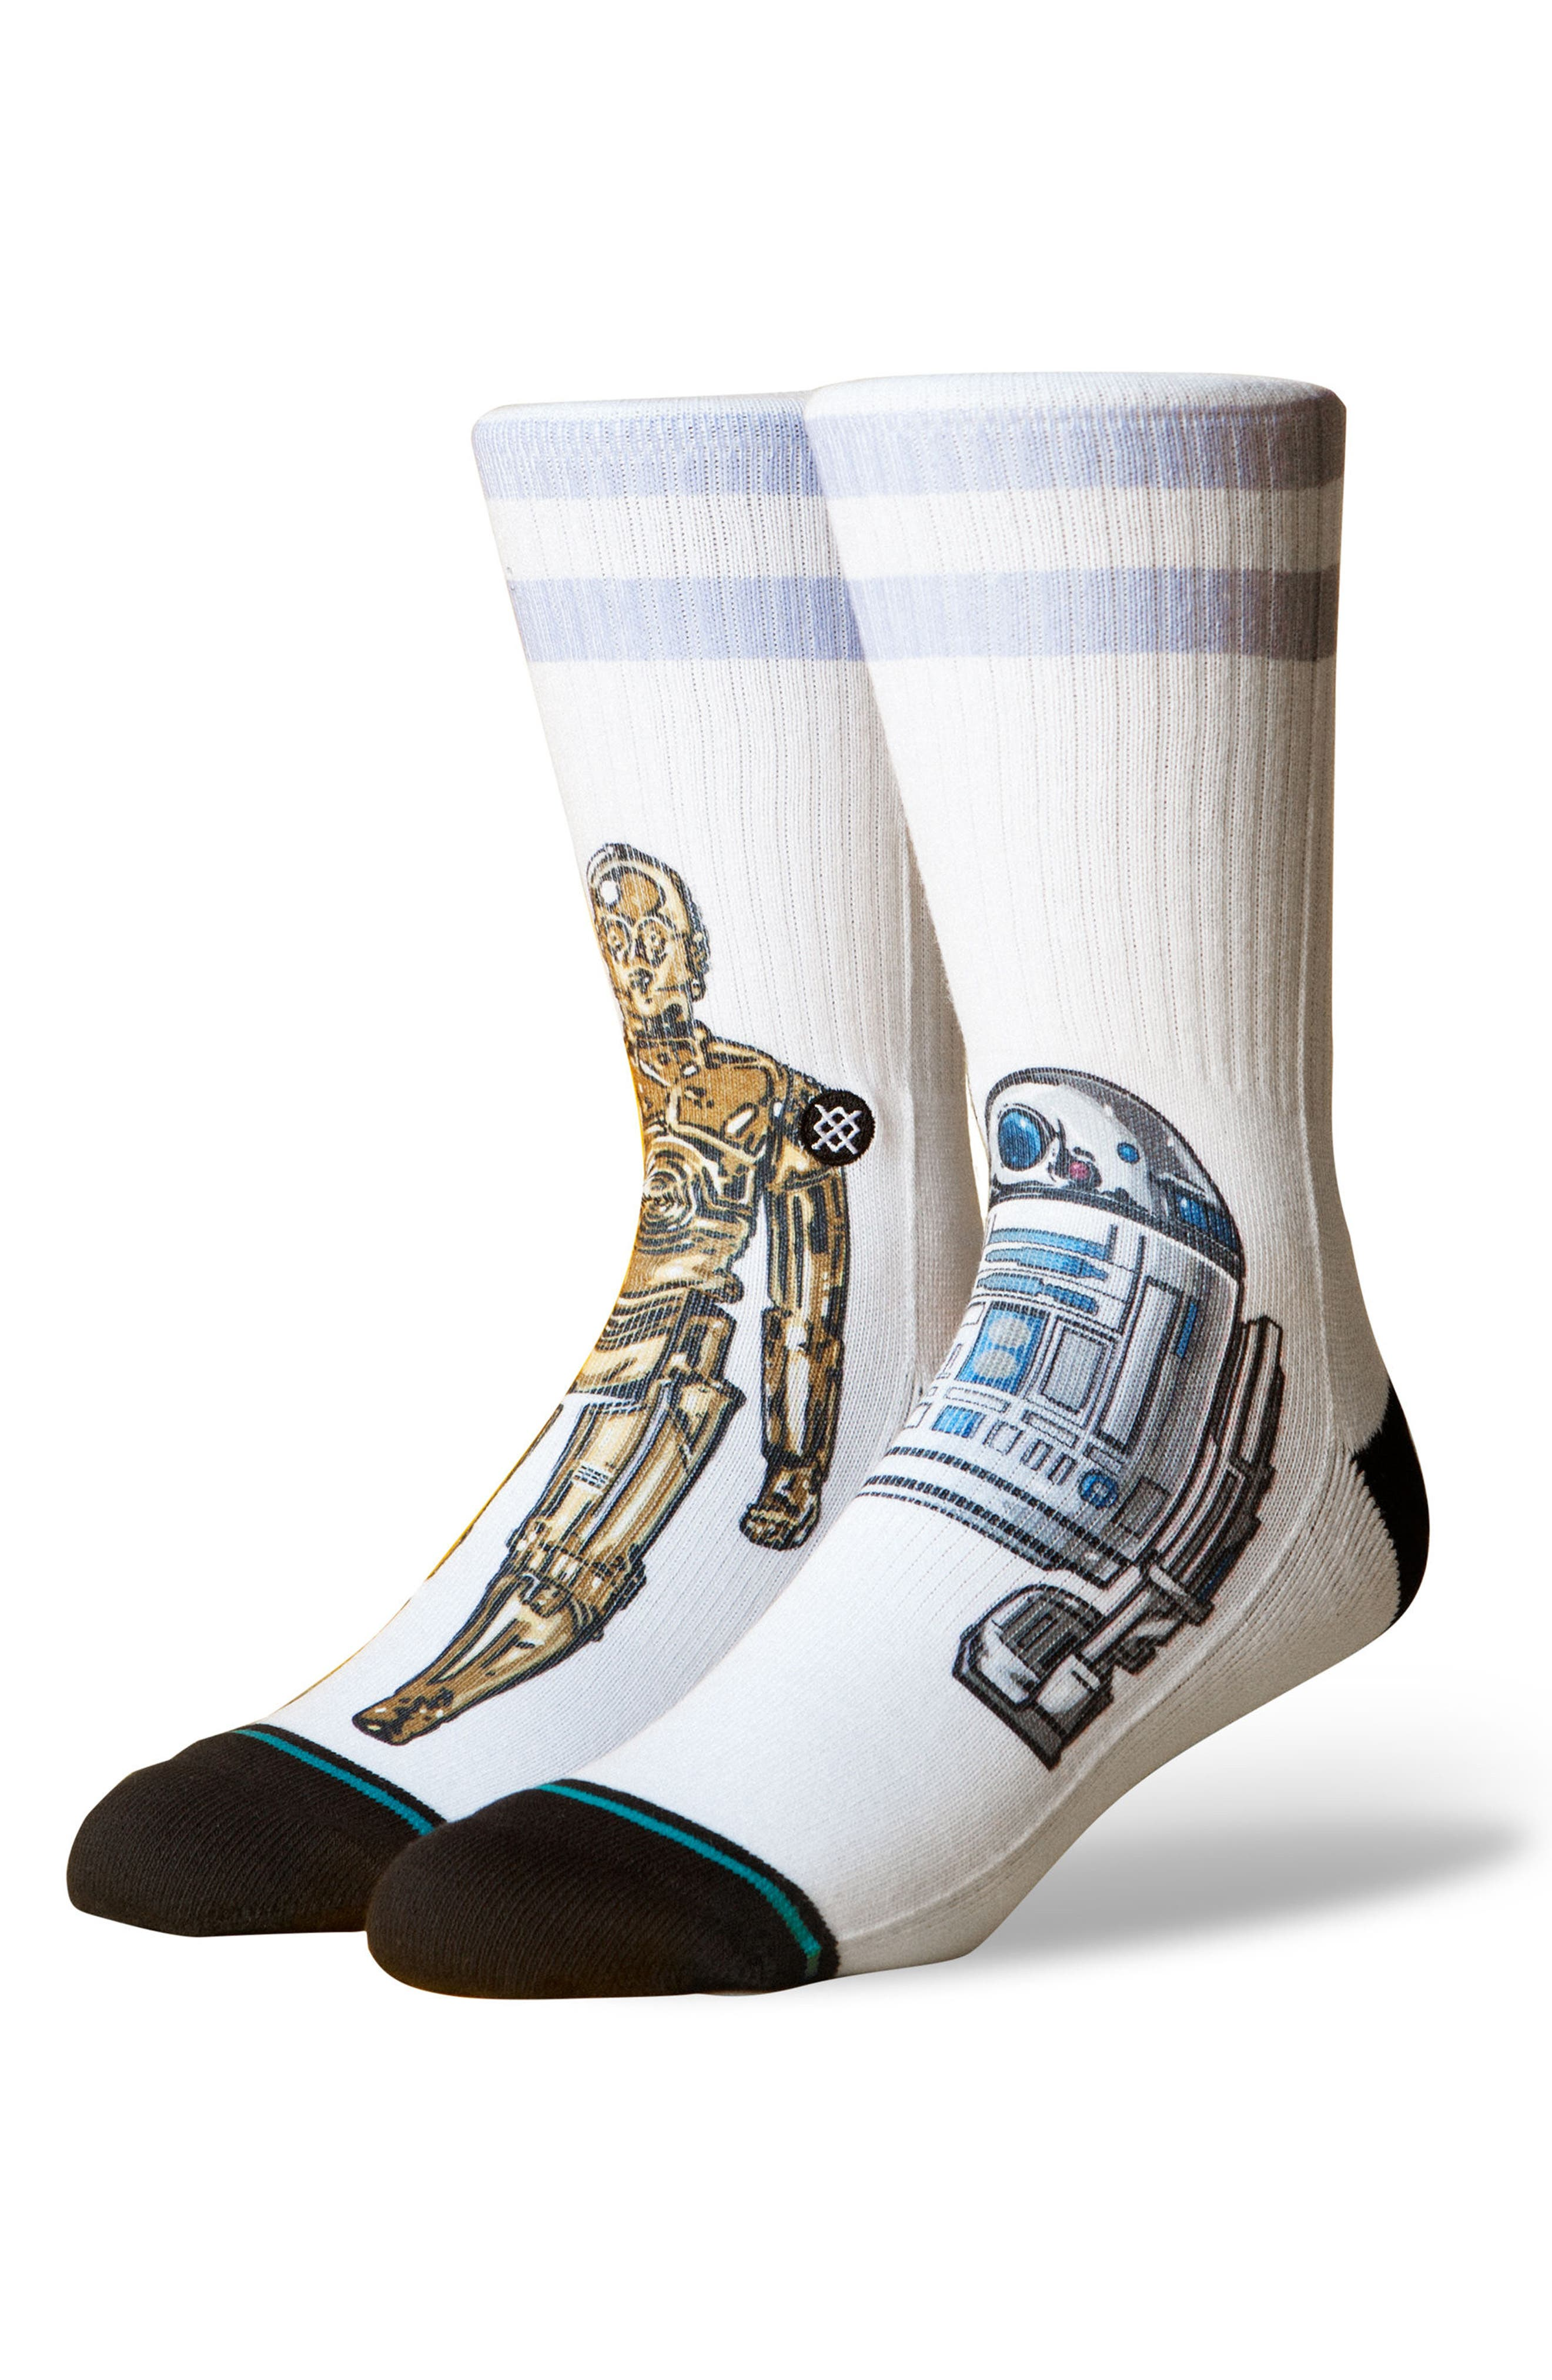 Star Wars<sup>™</sup> Prime Condition Socks,                             Main thumbnail 1, color,                             White